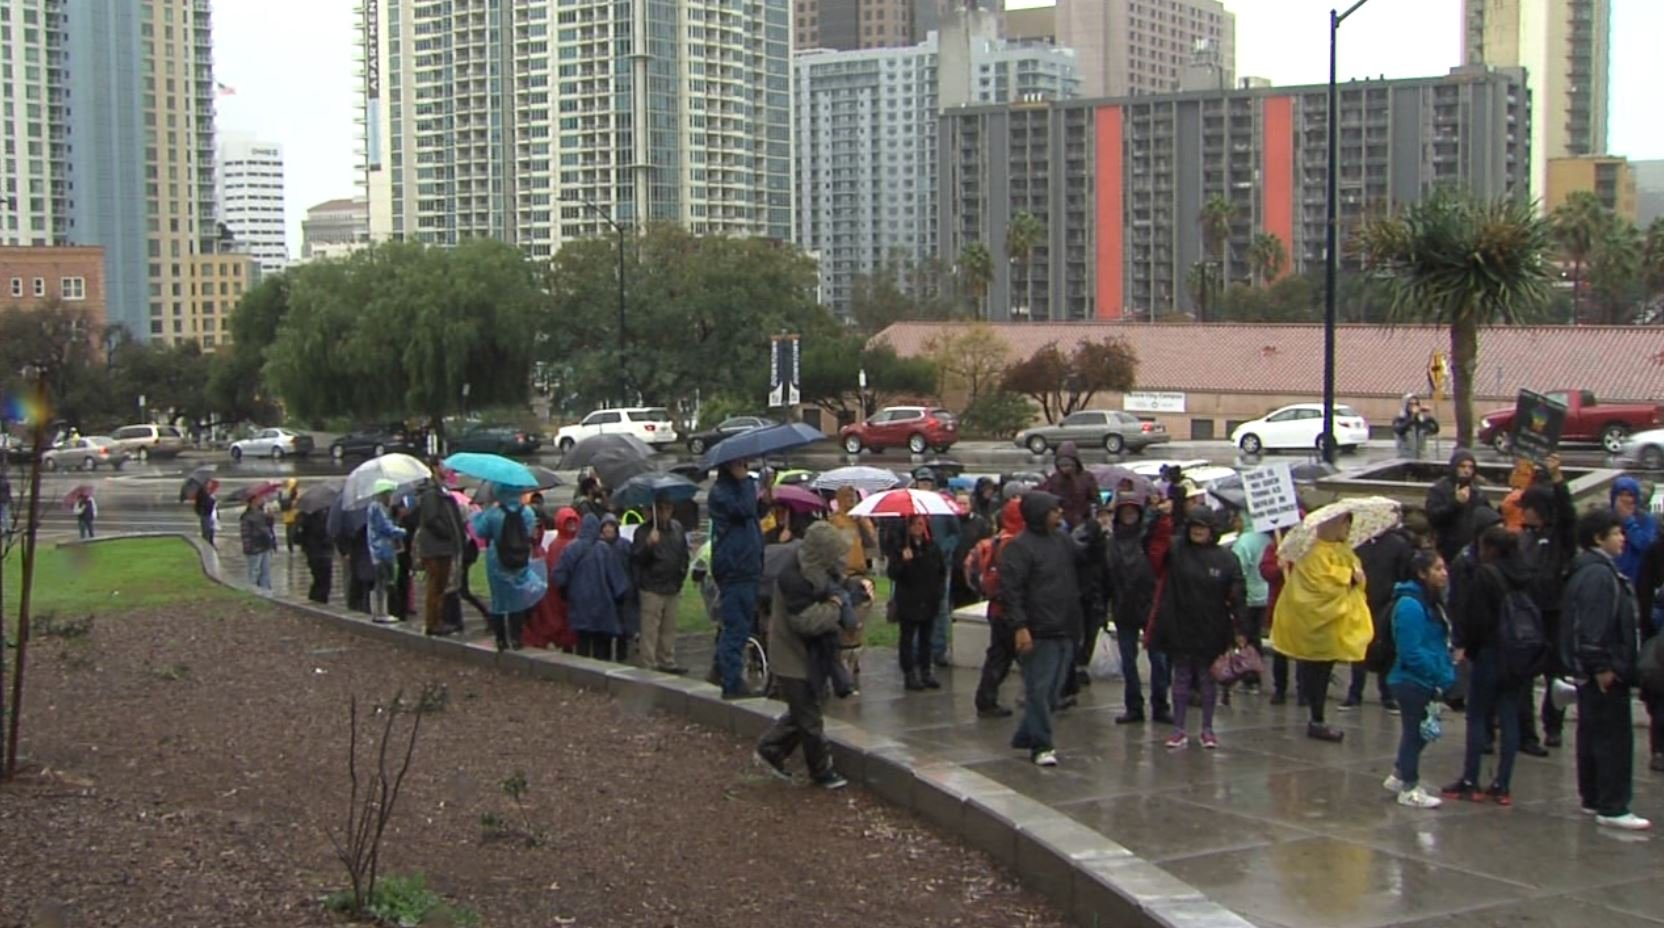 Crowds march in downtown San Diego, protesting inauguration of Donald Trump